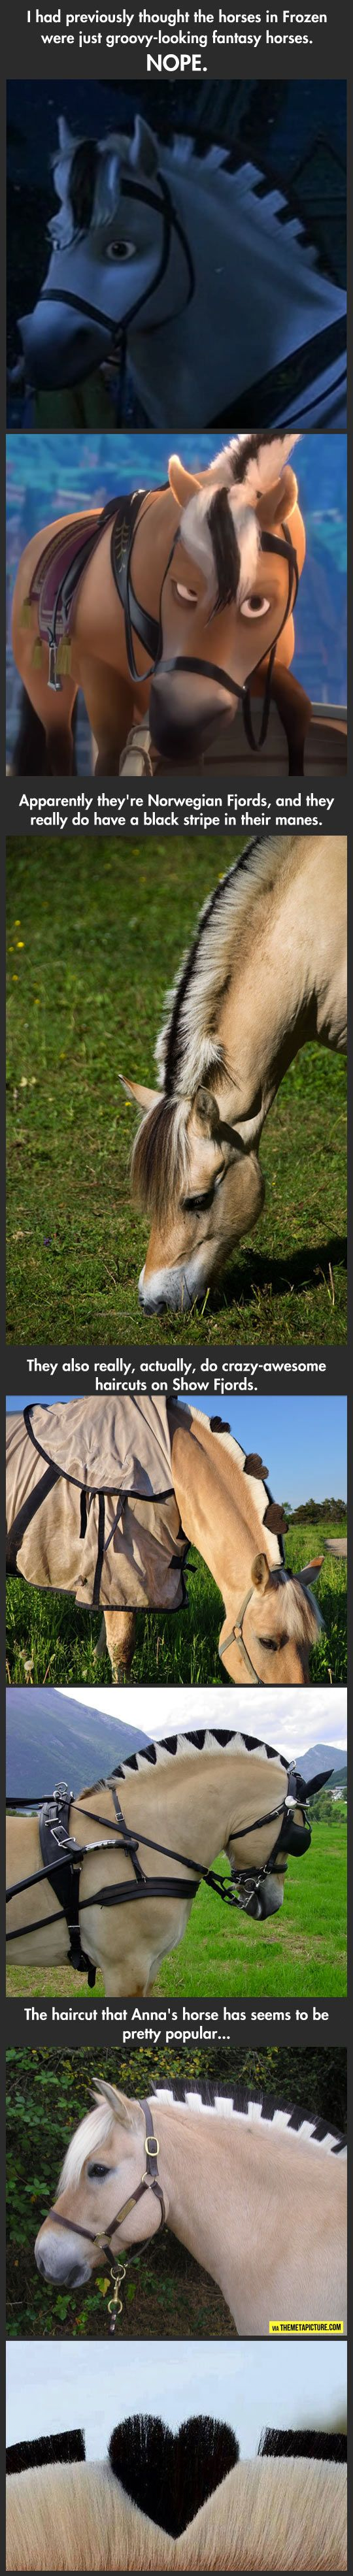 So The Horses In Frozen Are Real